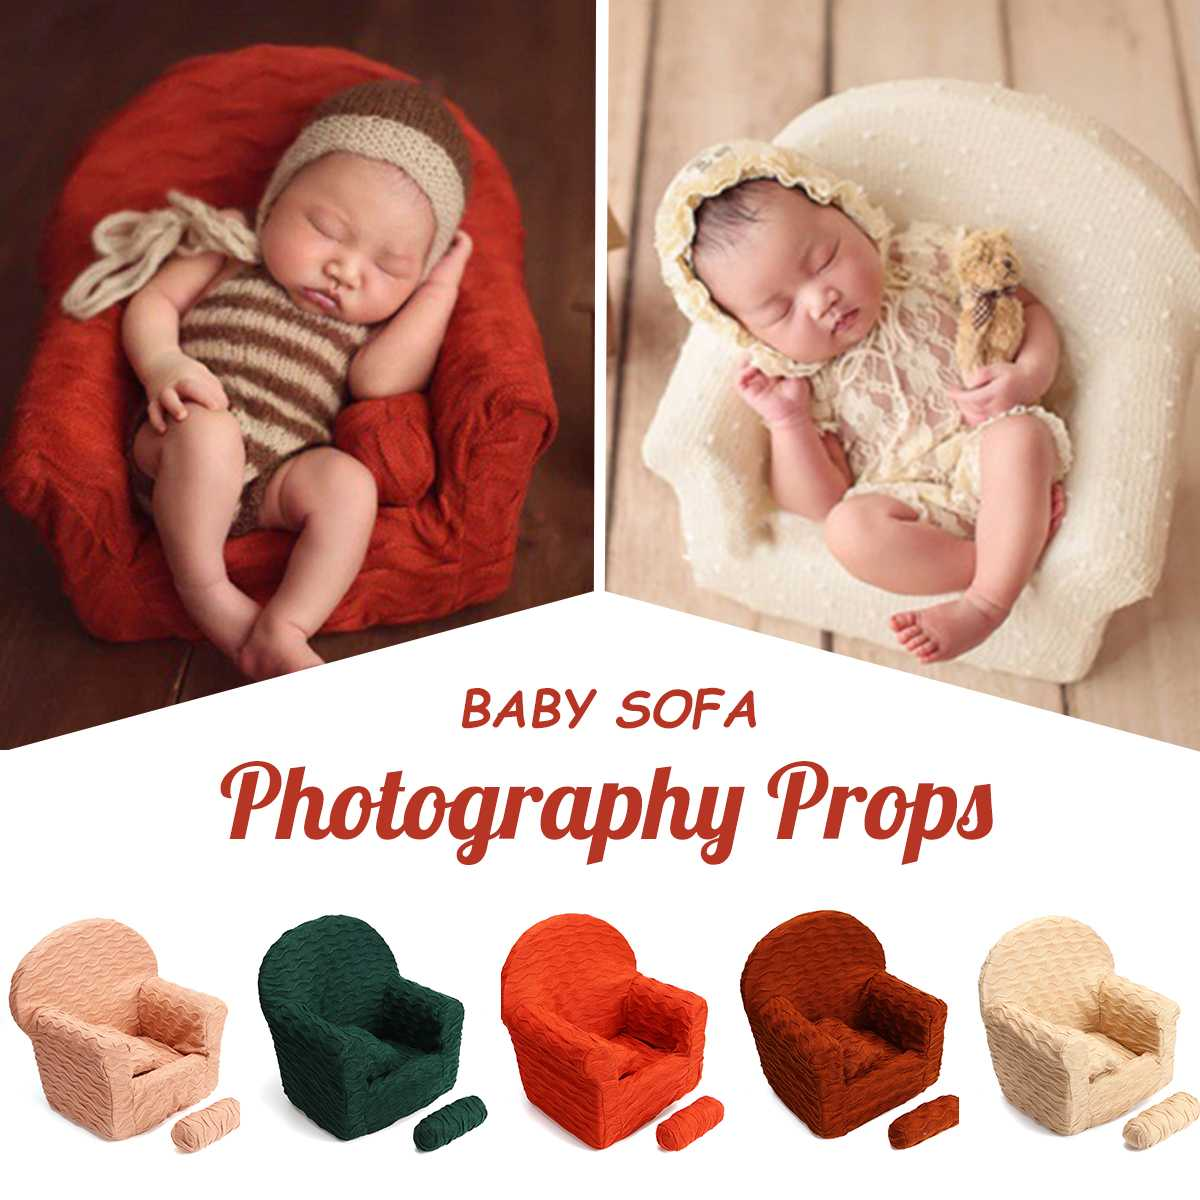 Newborn Baby Sofa Studio Photoshoot Accessories Tool Baby Modeling Photography Props Small Sofa Chair Photo Decor With 2 Pillows